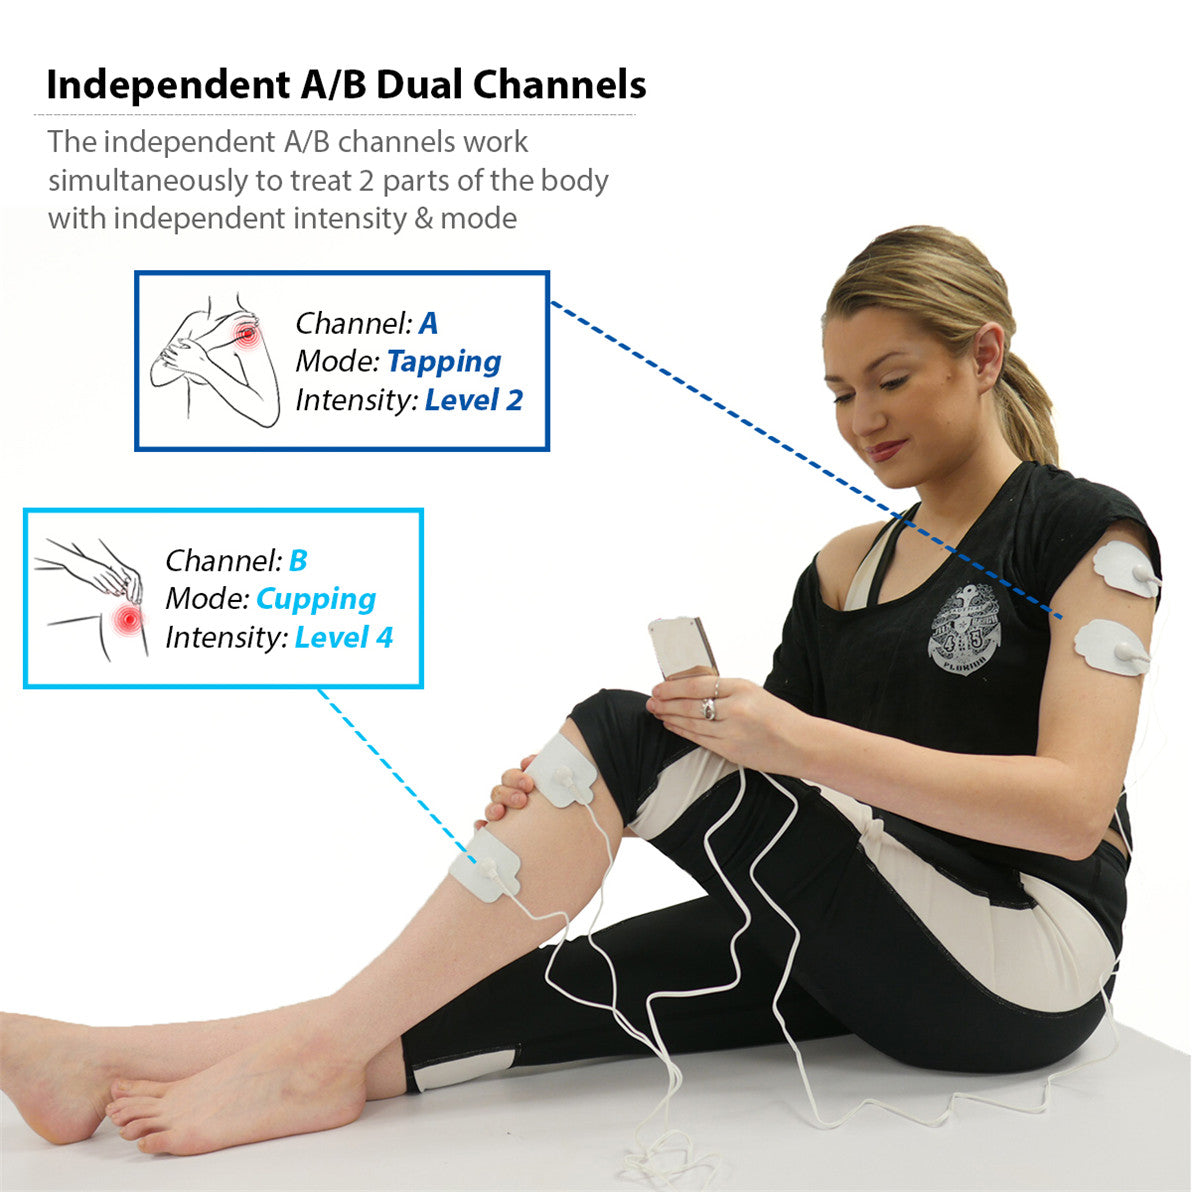 T24AB FDA Cleared 24 mode Touch Screen Pain Relief TENS UNIT - 2 Year Warranty - HealthmateForever